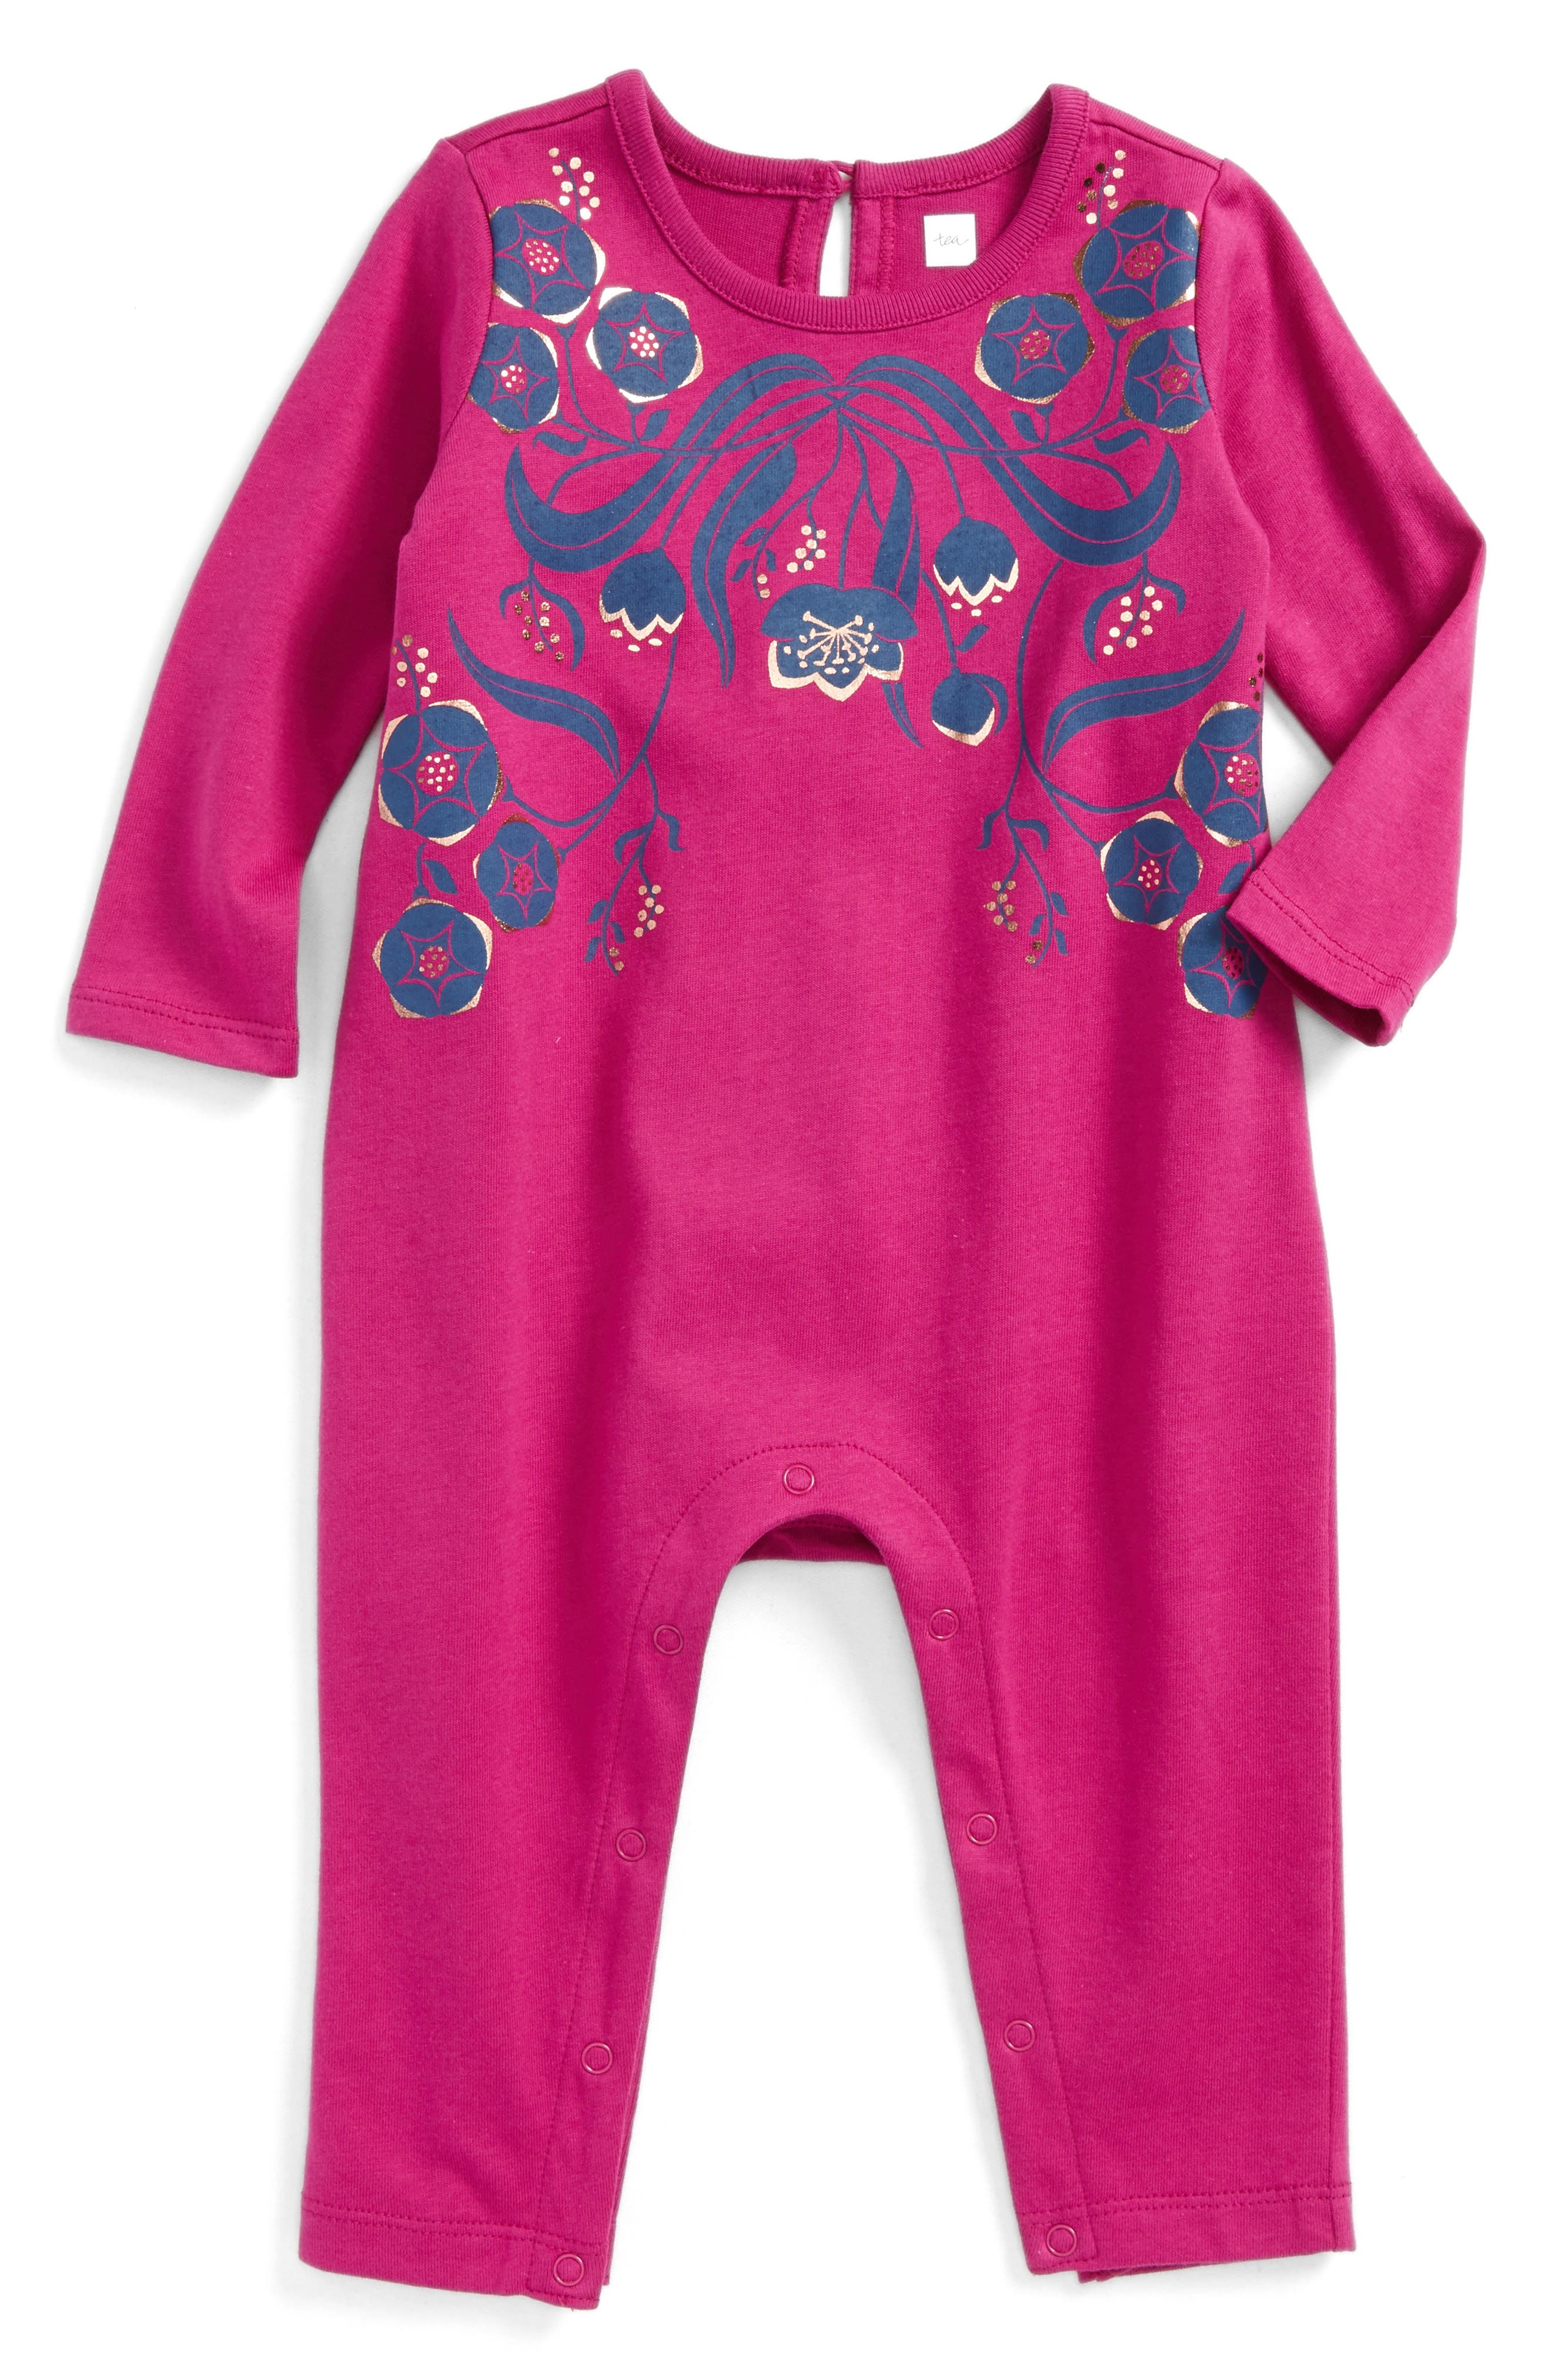 Main Image - Tea Collection Rosewell Romper (Baby Girls)